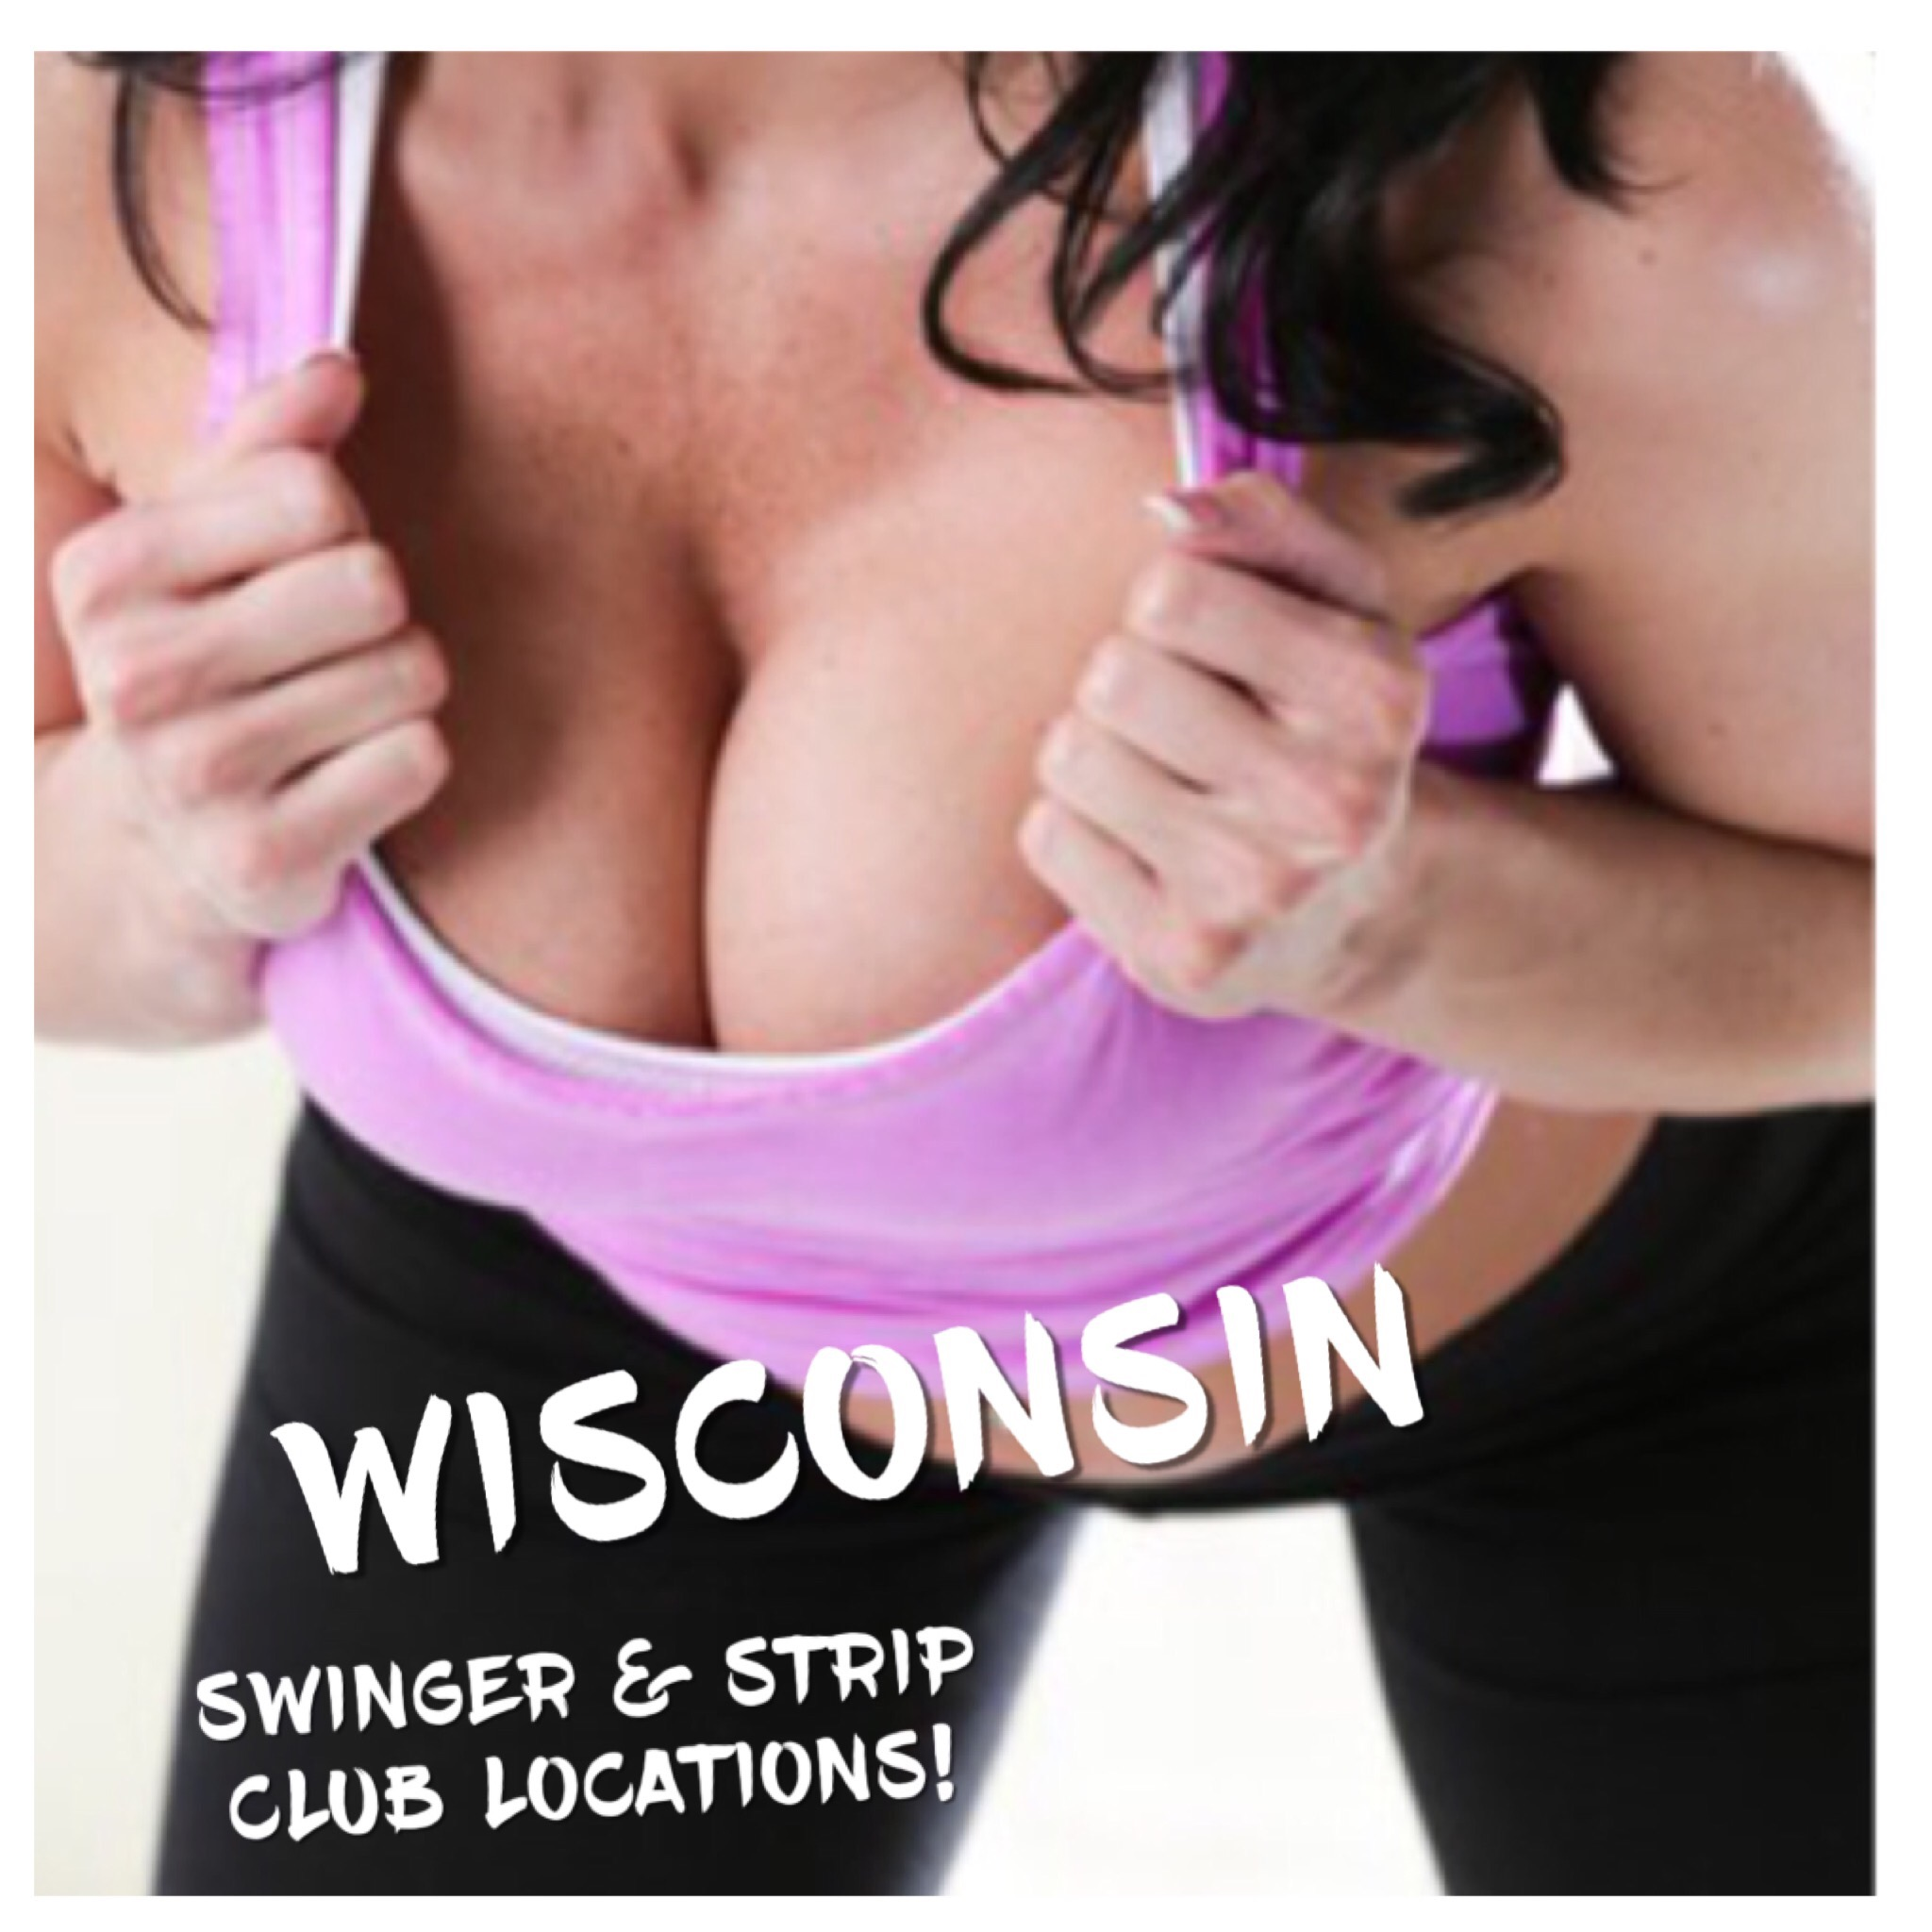 Swinger clubs in wisconsin